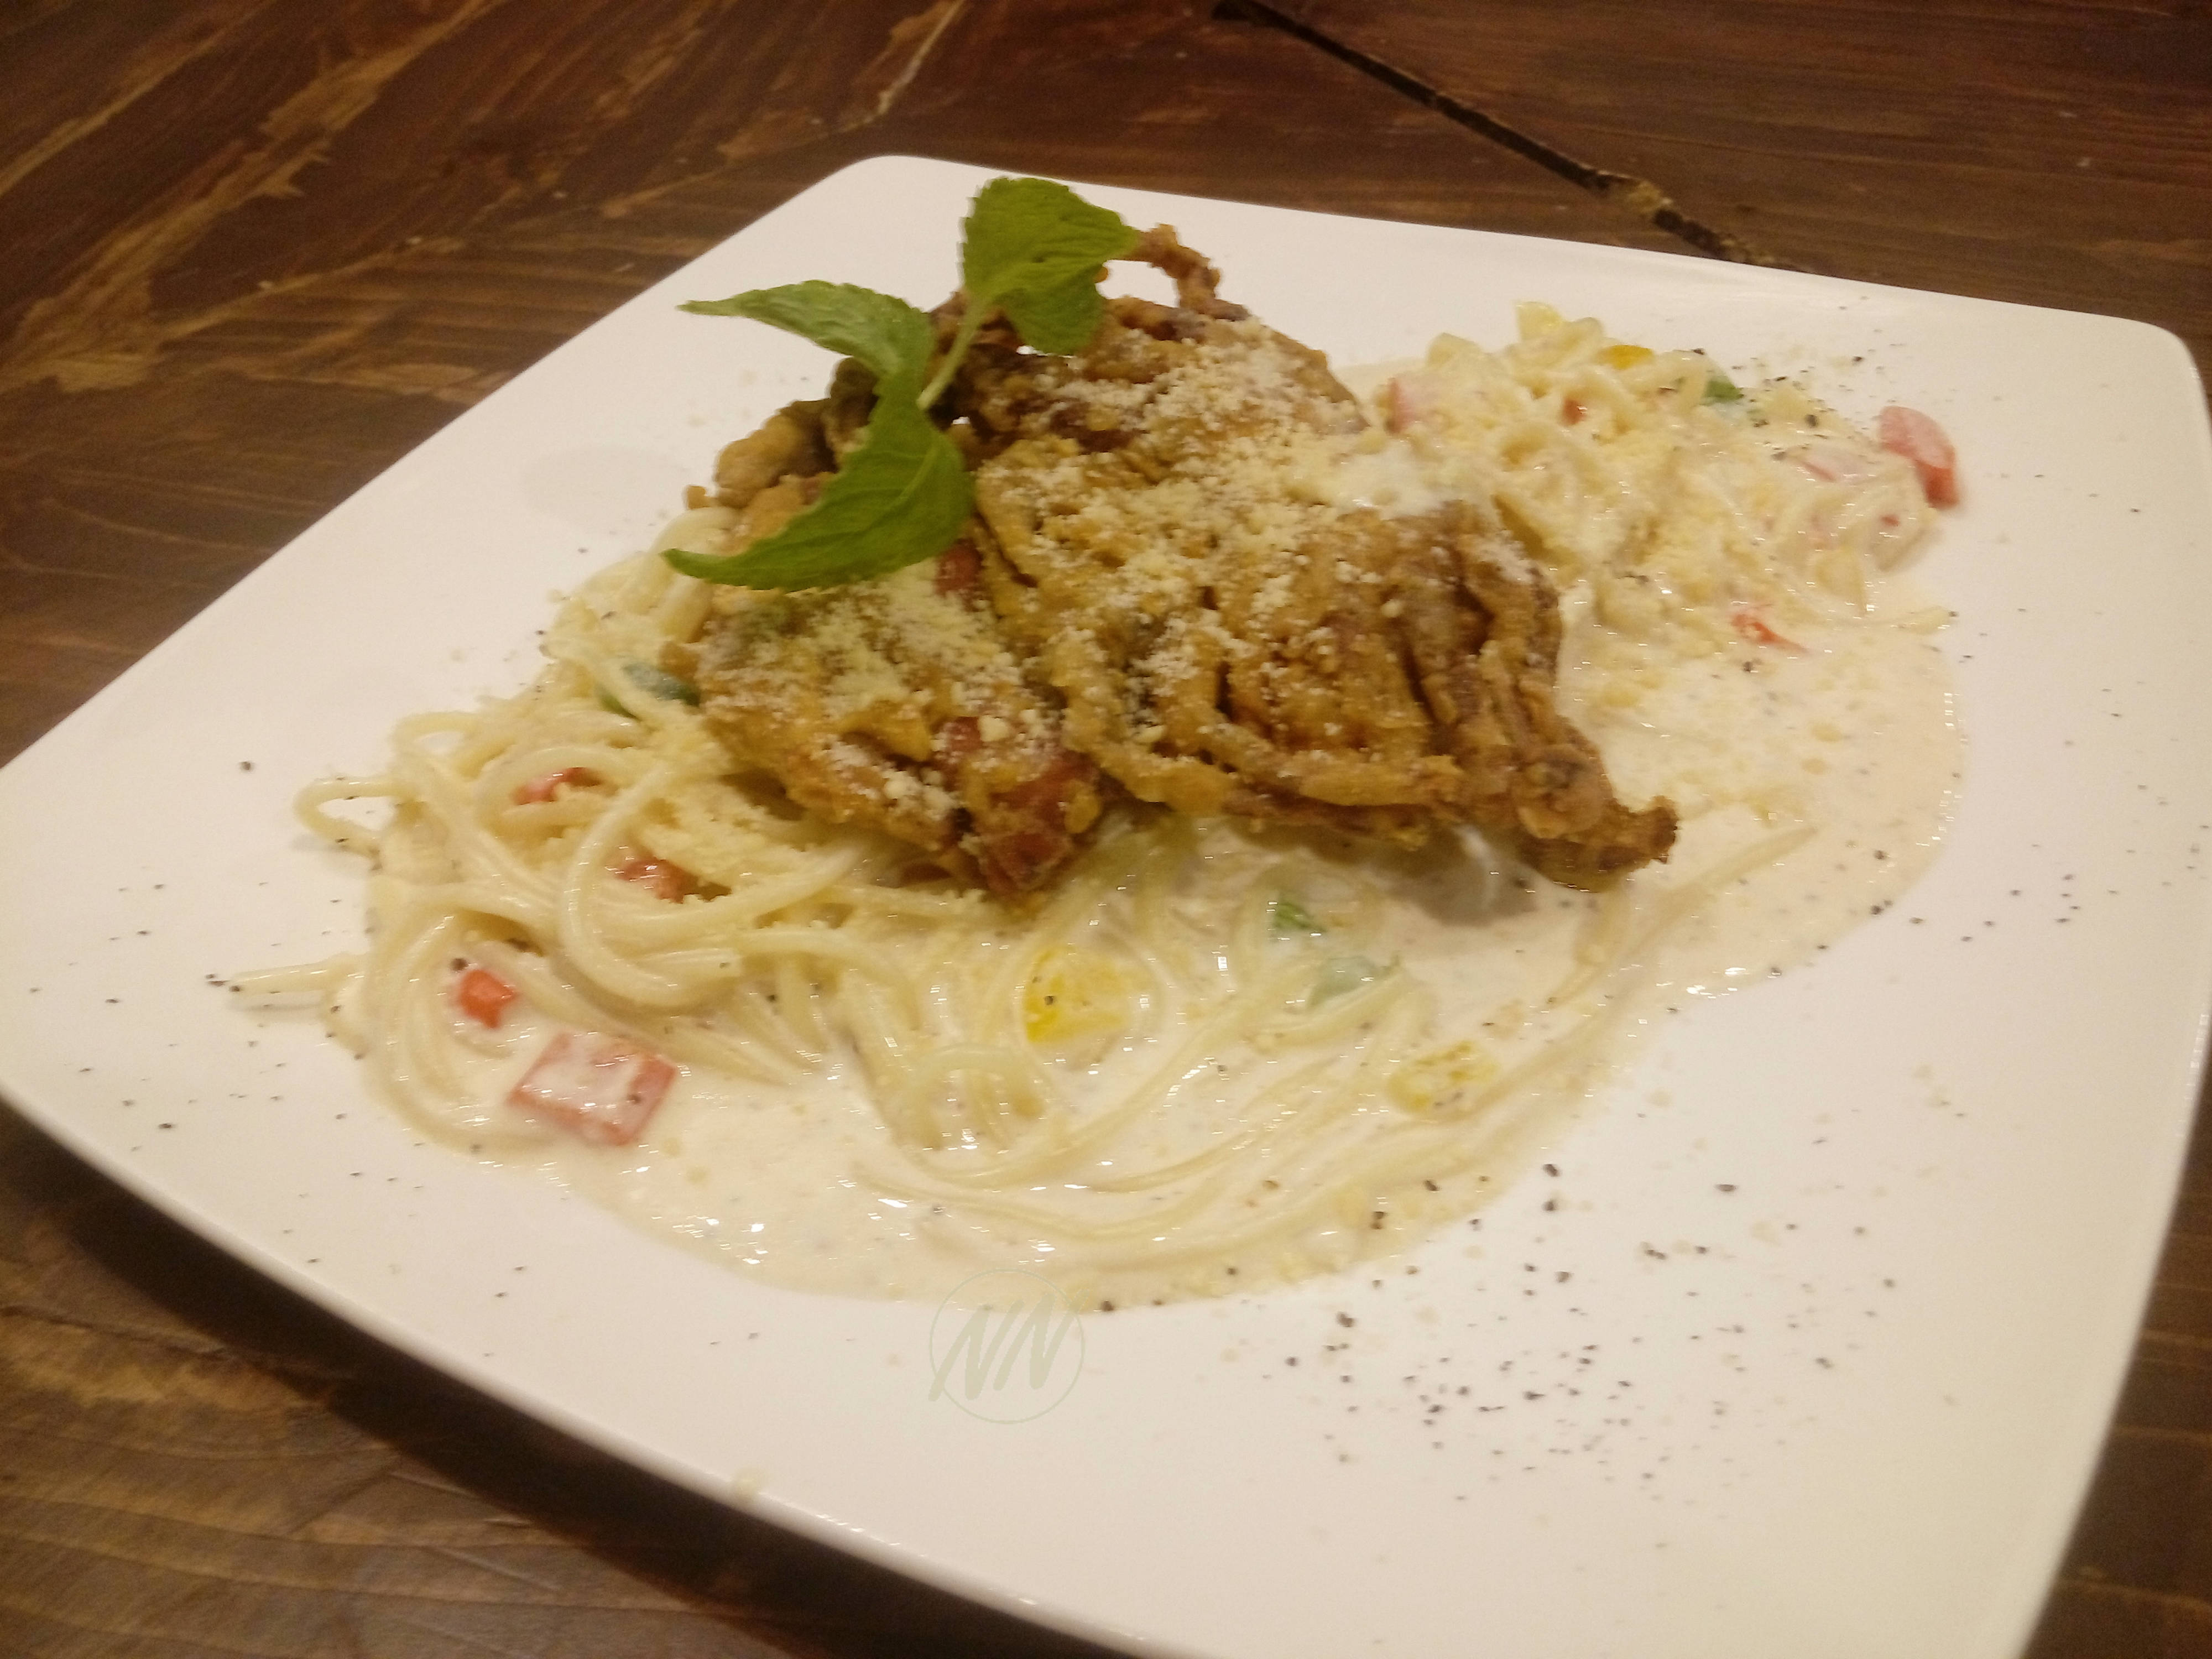 Spicy Creamy Pasta Soft Shell Crab - RM28.90